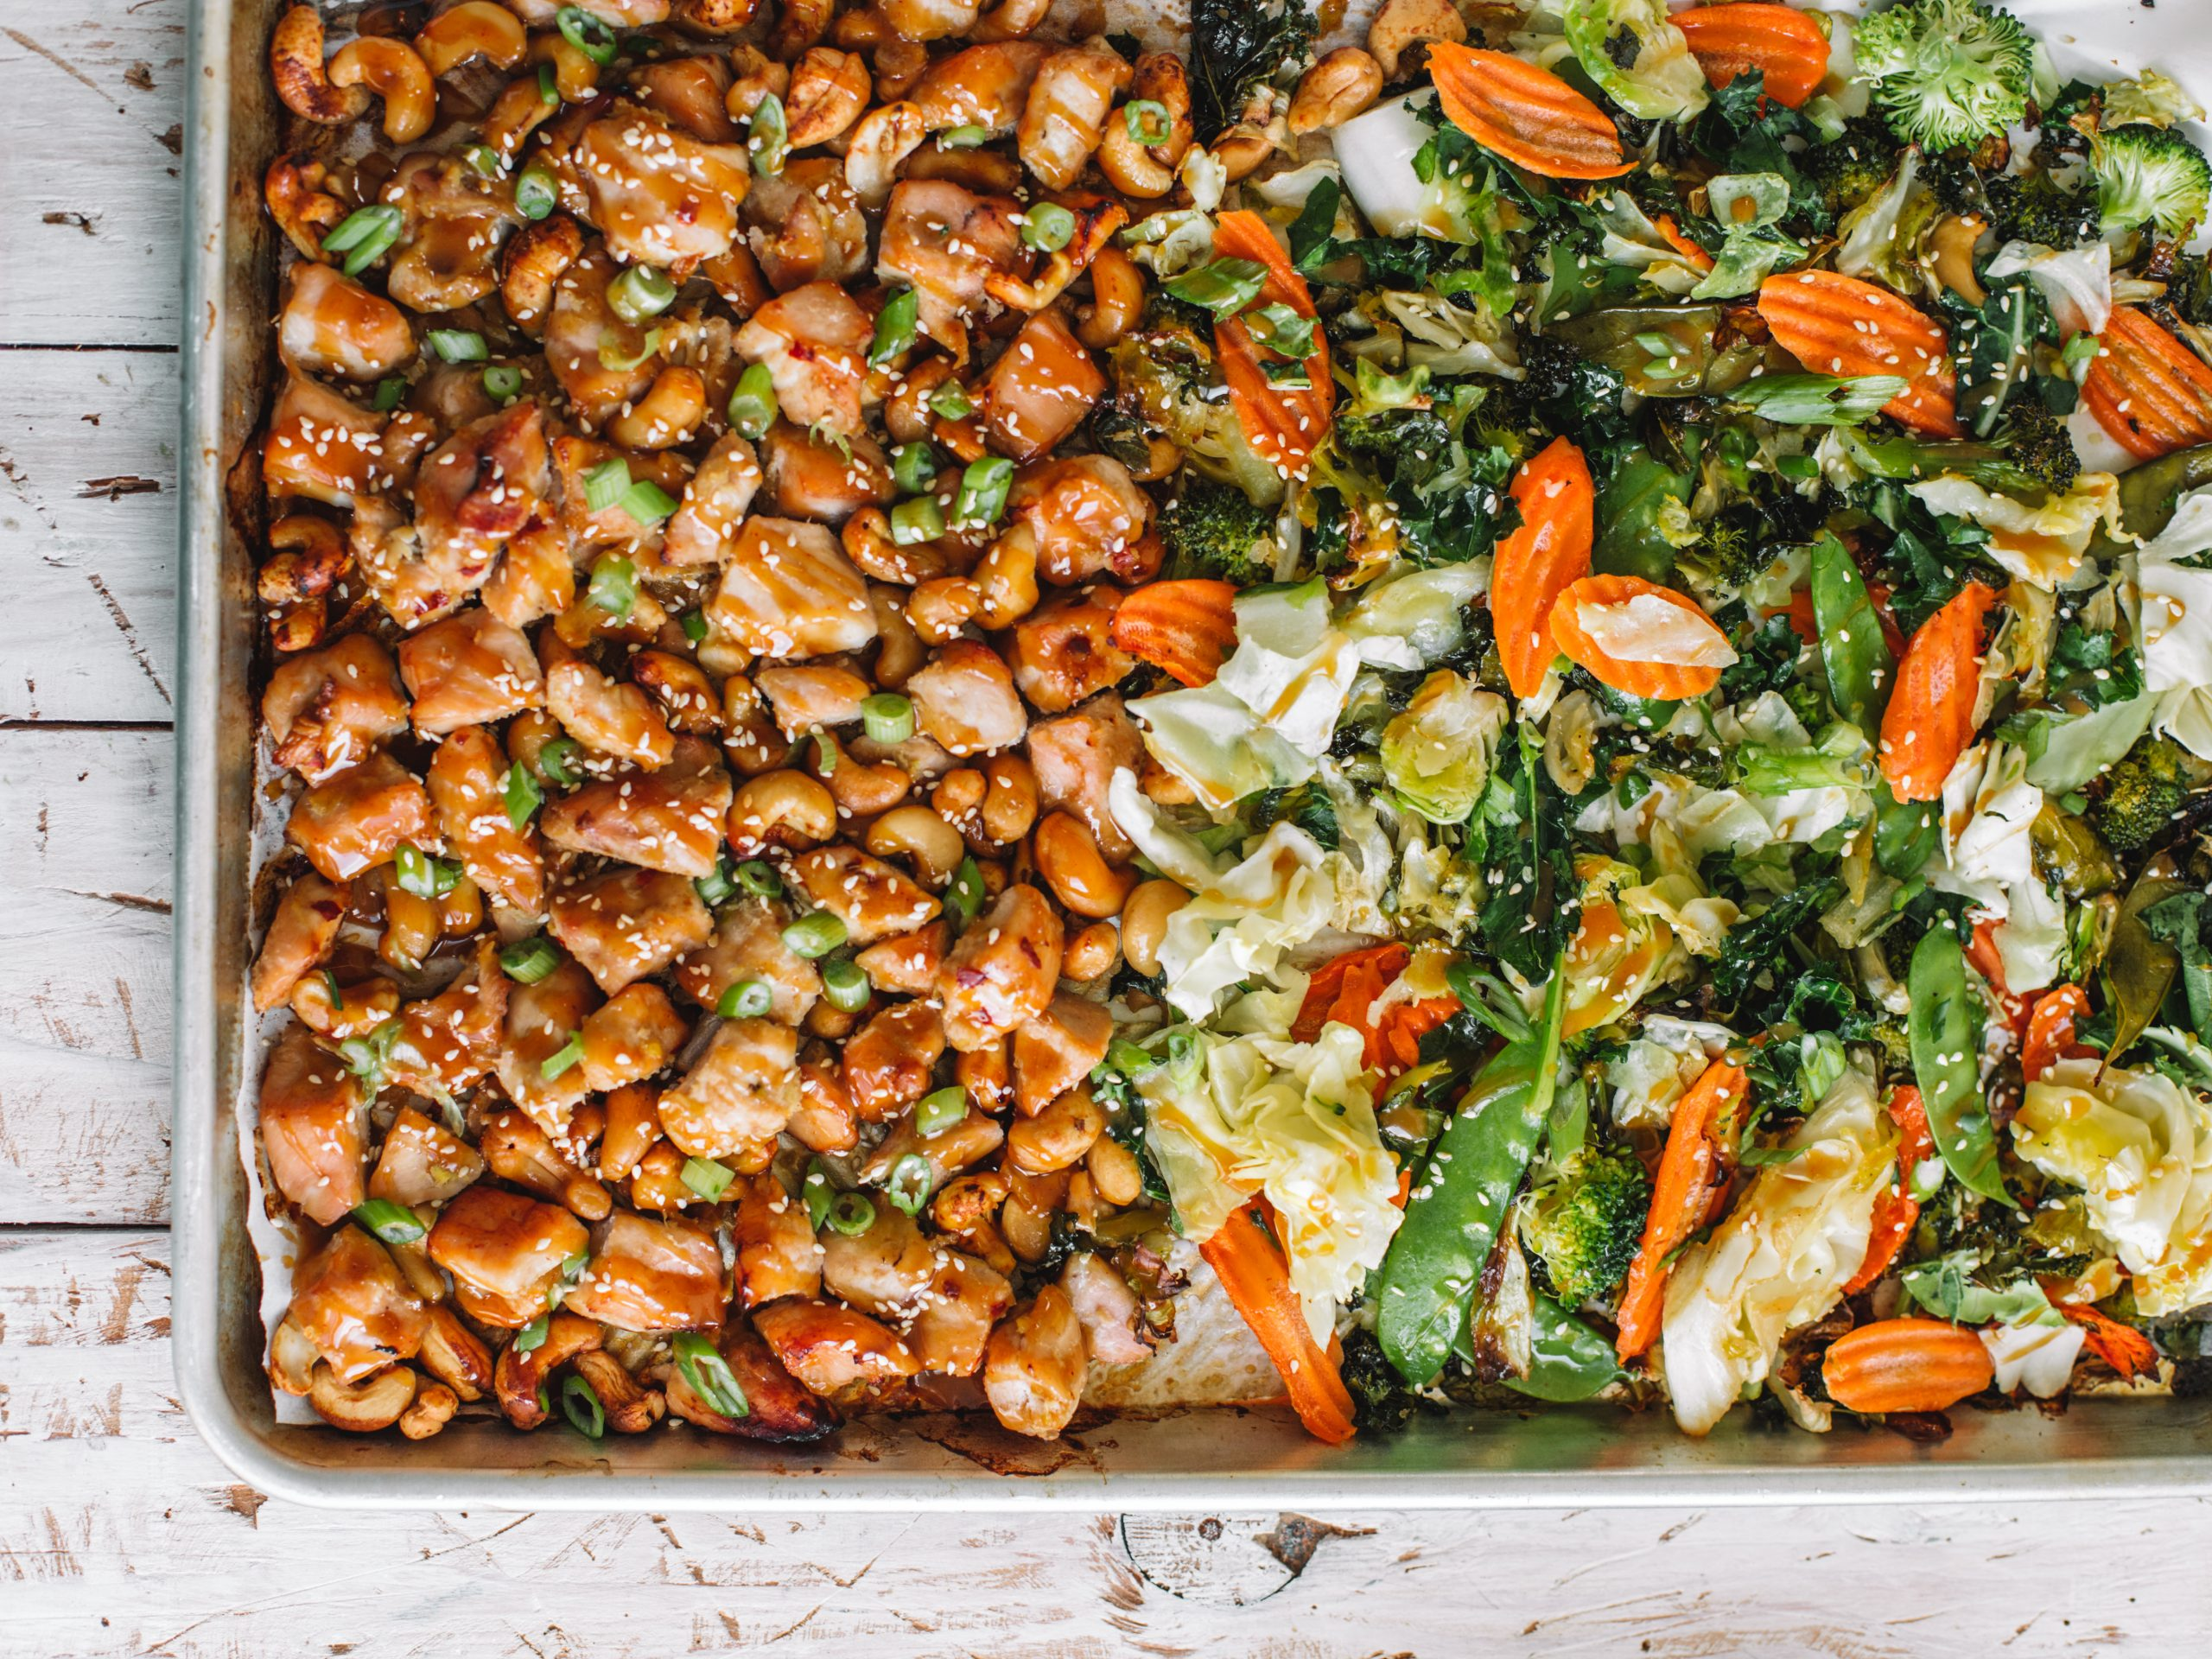 Sheet pan baking tray of cashew chicken and asian vegetables.